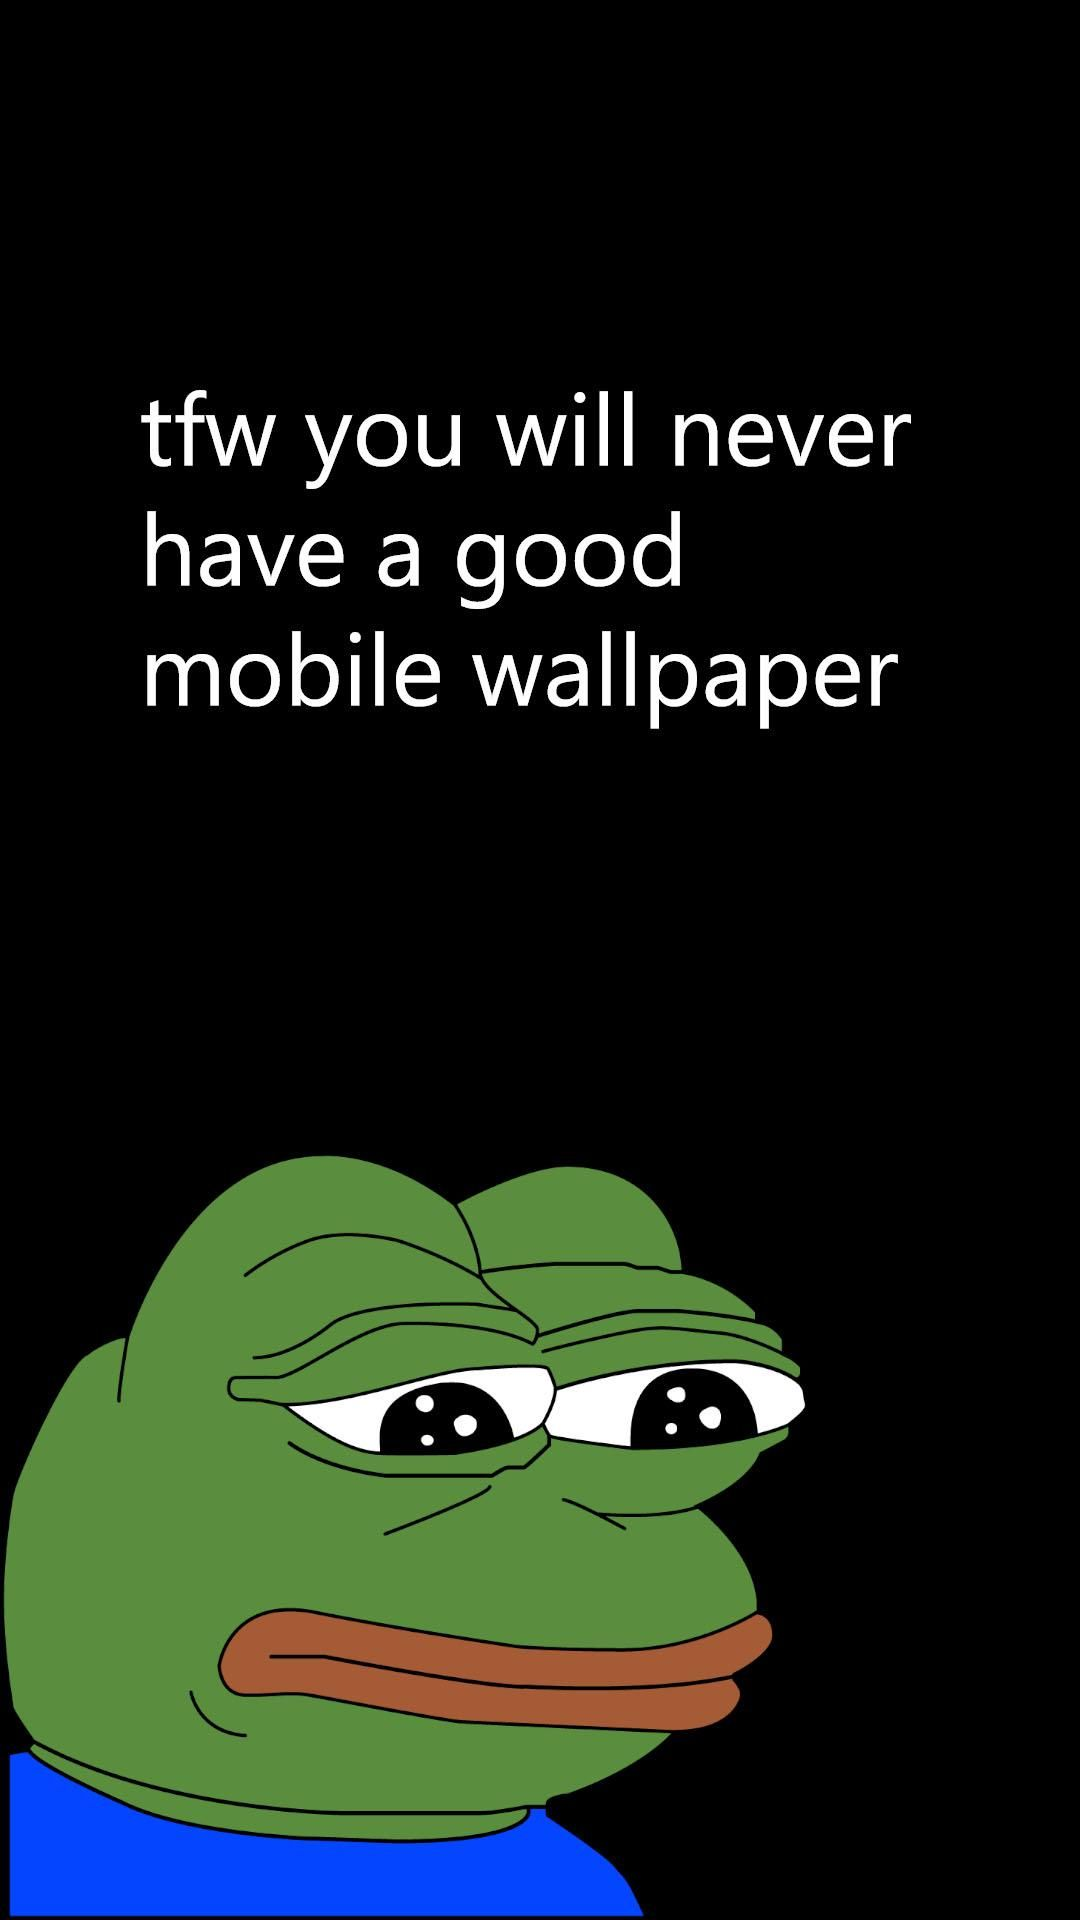 Tfw You Will Never Have A Good Wallpaper 1080x1920 Phone Wallpaper Wallpaper Mobile Wallpaper